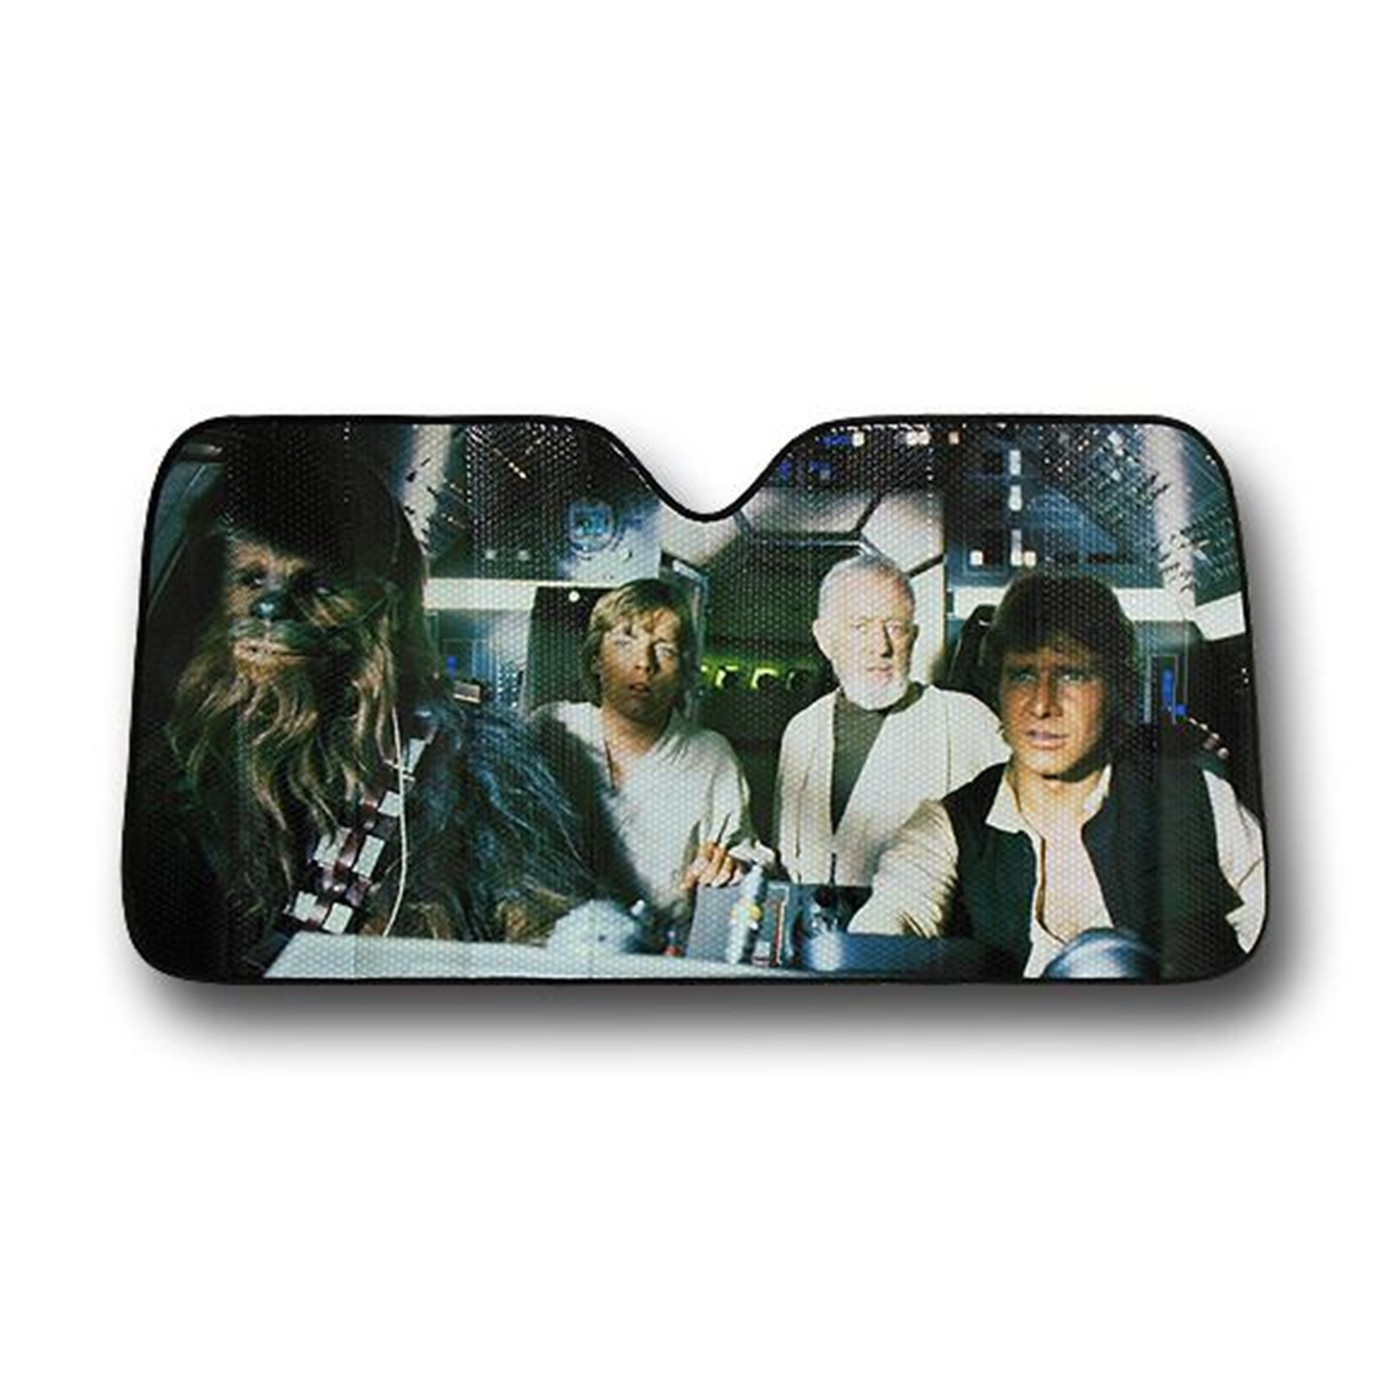 Star Wars New Hope Car Sunshade